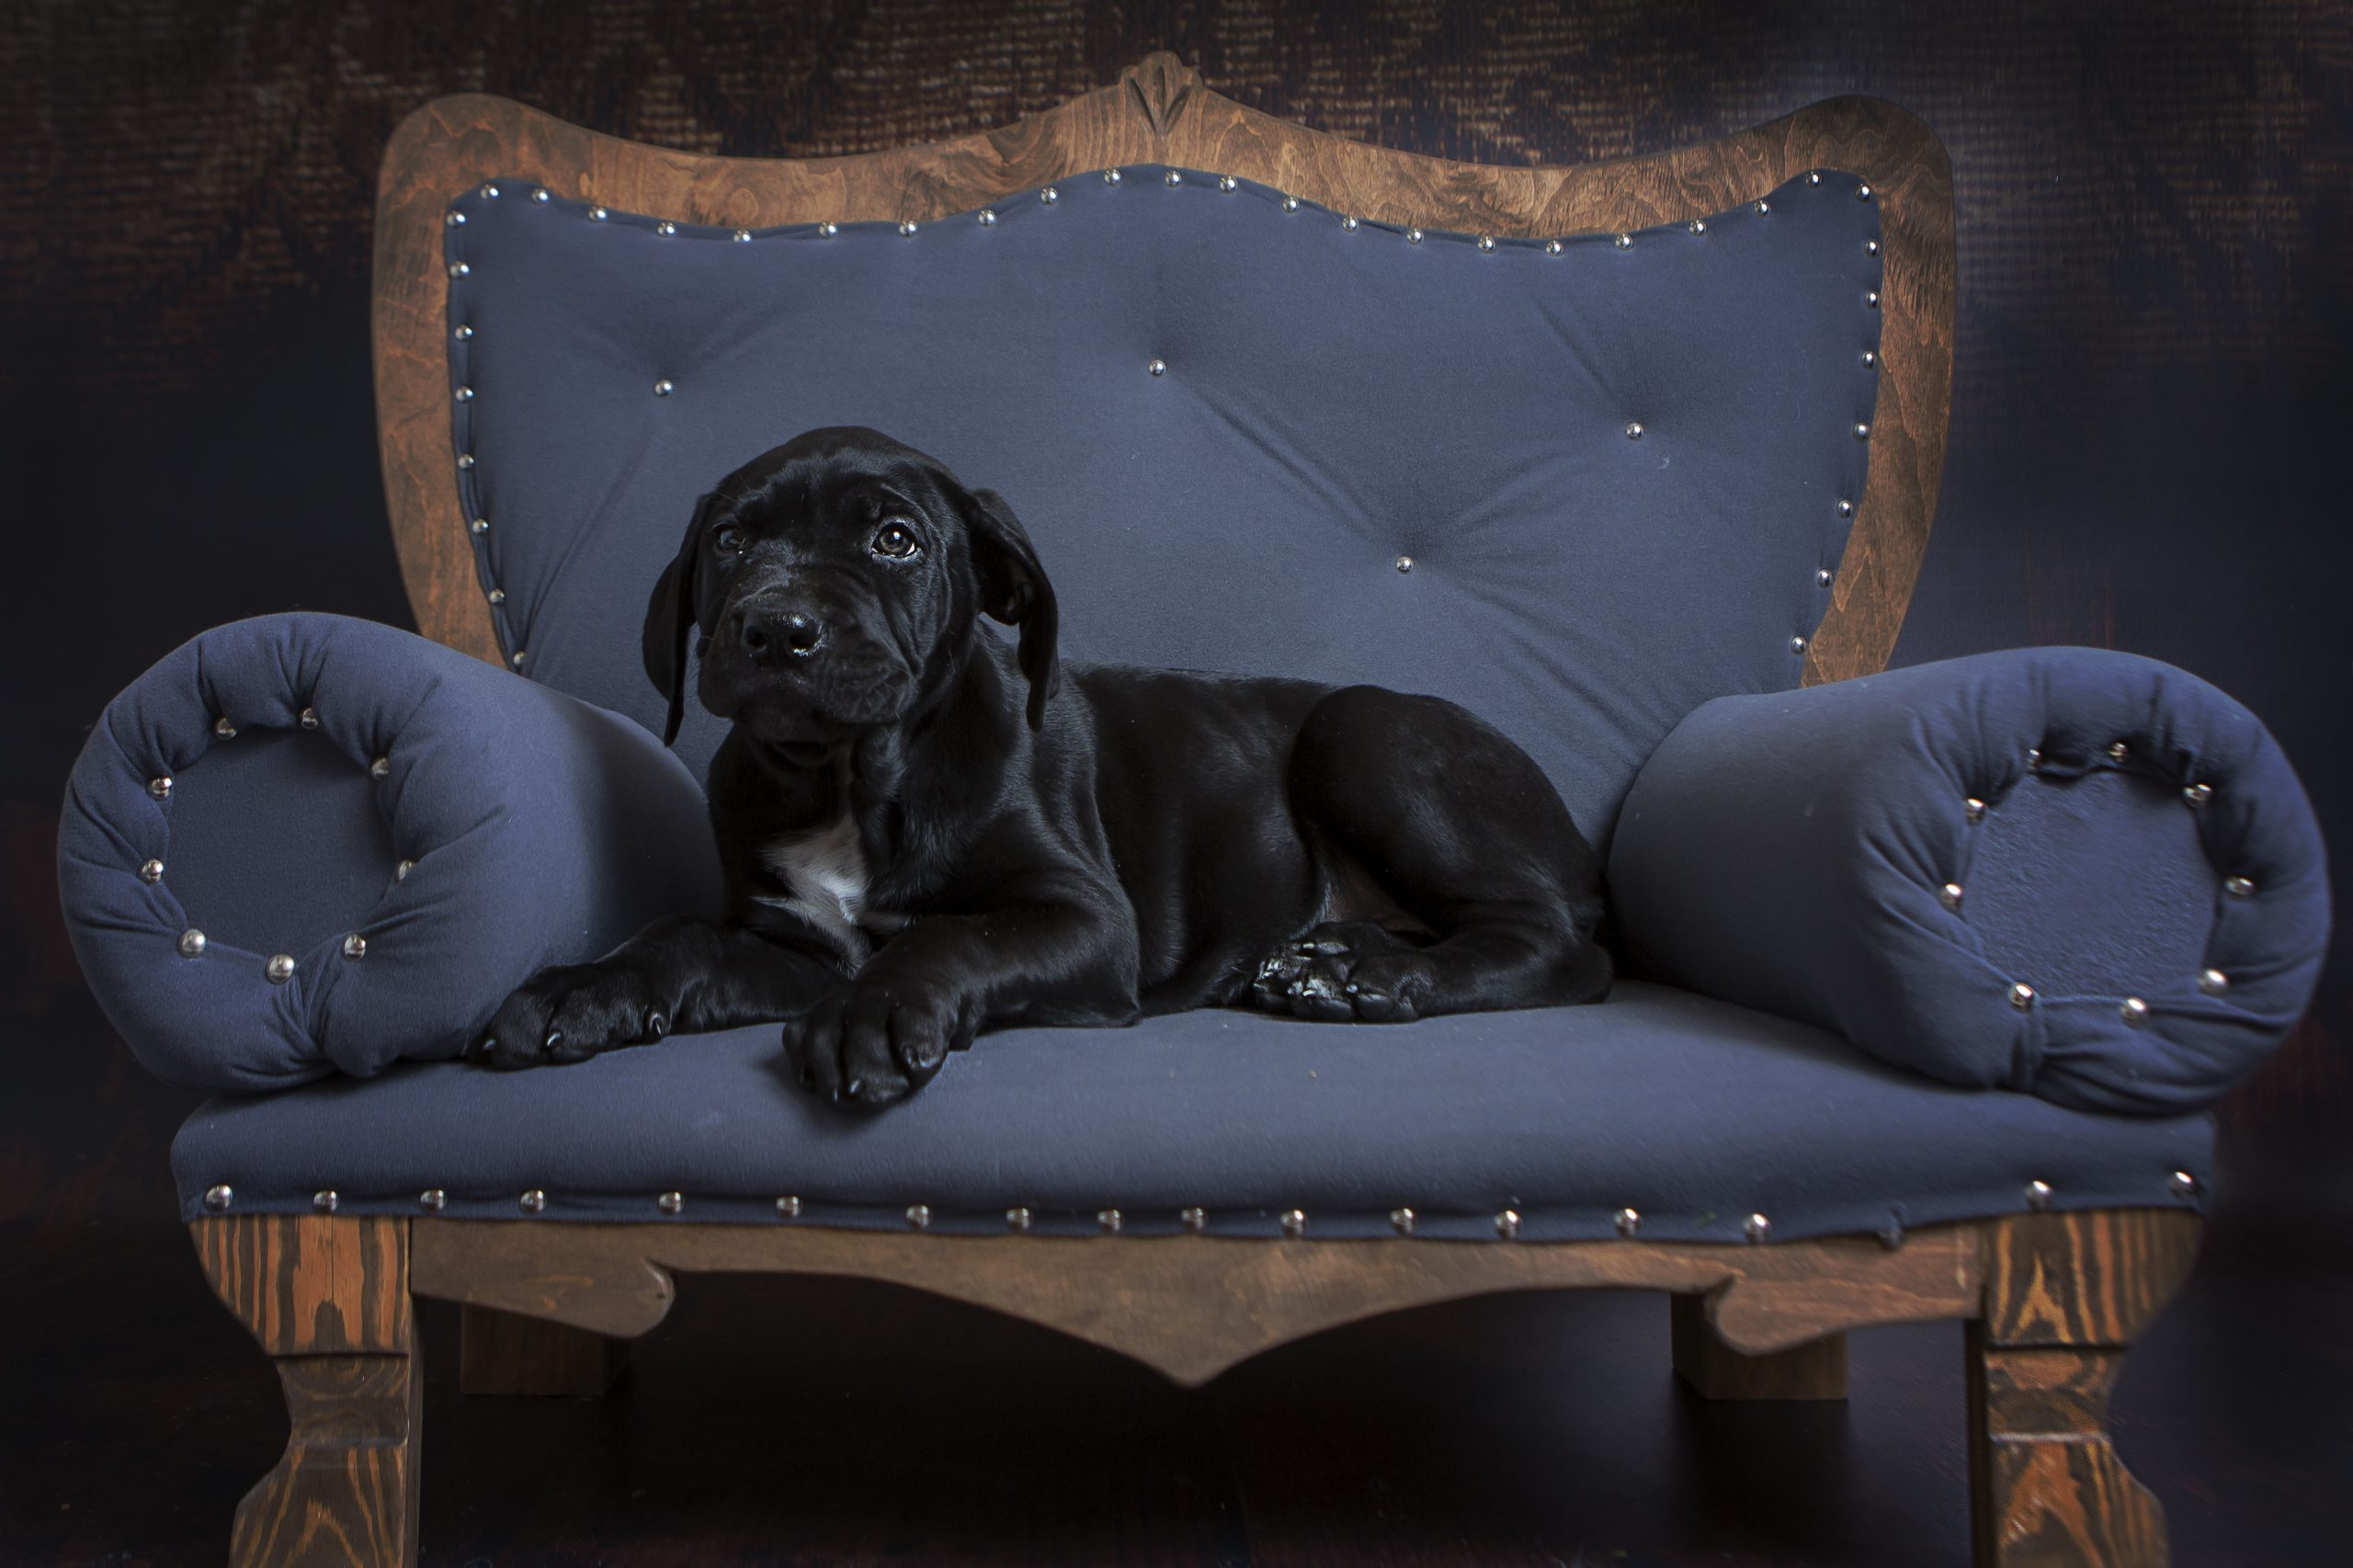 LUNA Pet Photographer in Rugby Emma Lowe